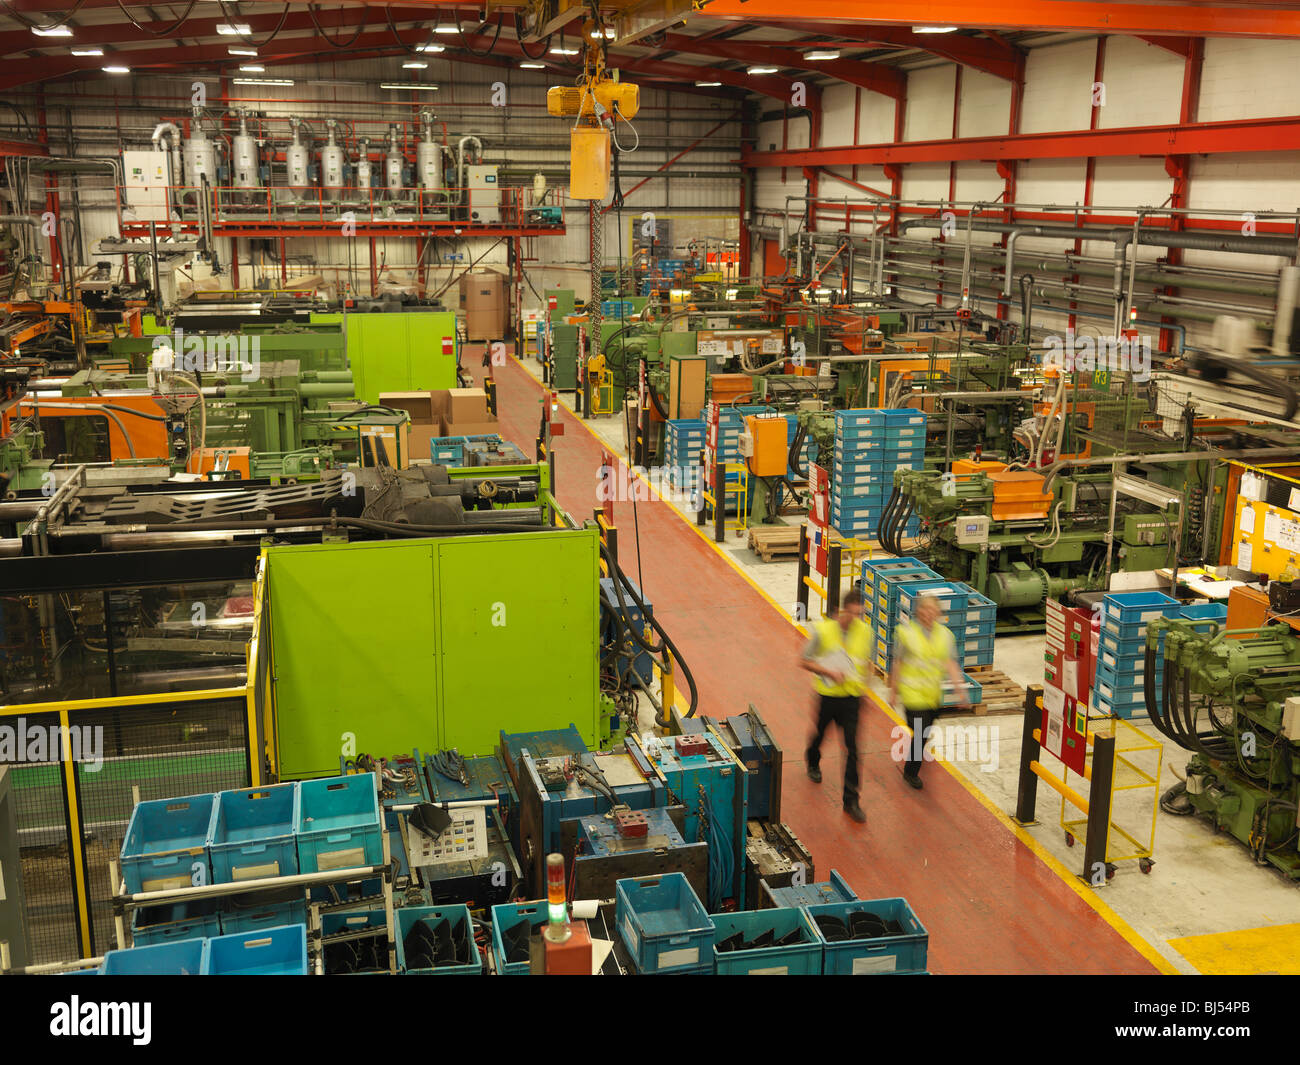 Overview Of Factory With Workers - Stock Image